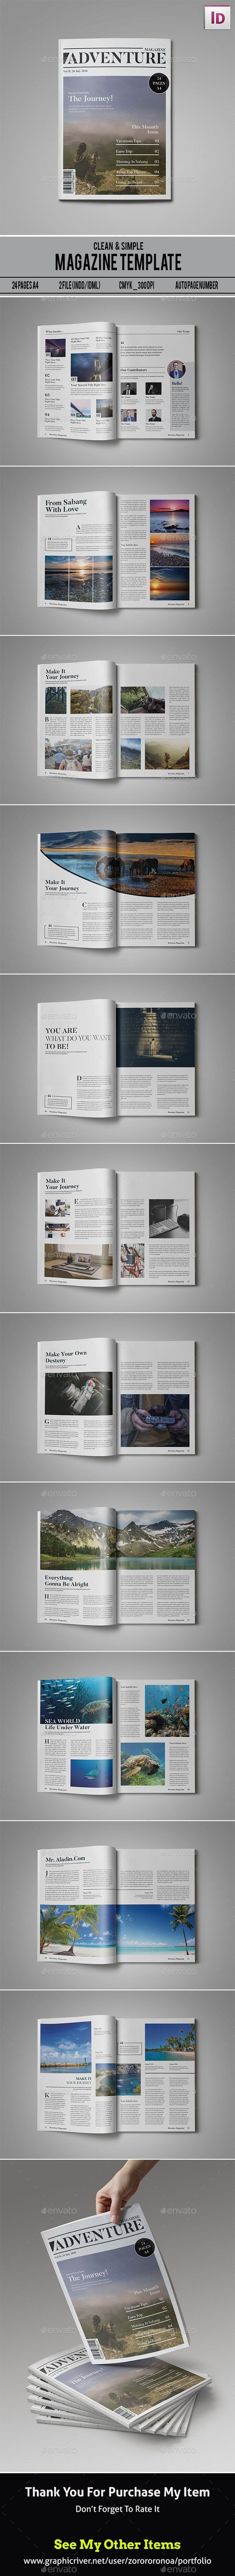 Multipurpose Magazine Template InDesign INDD. Download here: http://graphicriver.net/item/multipurpose-magazine-template/15855389?ref=ksioks